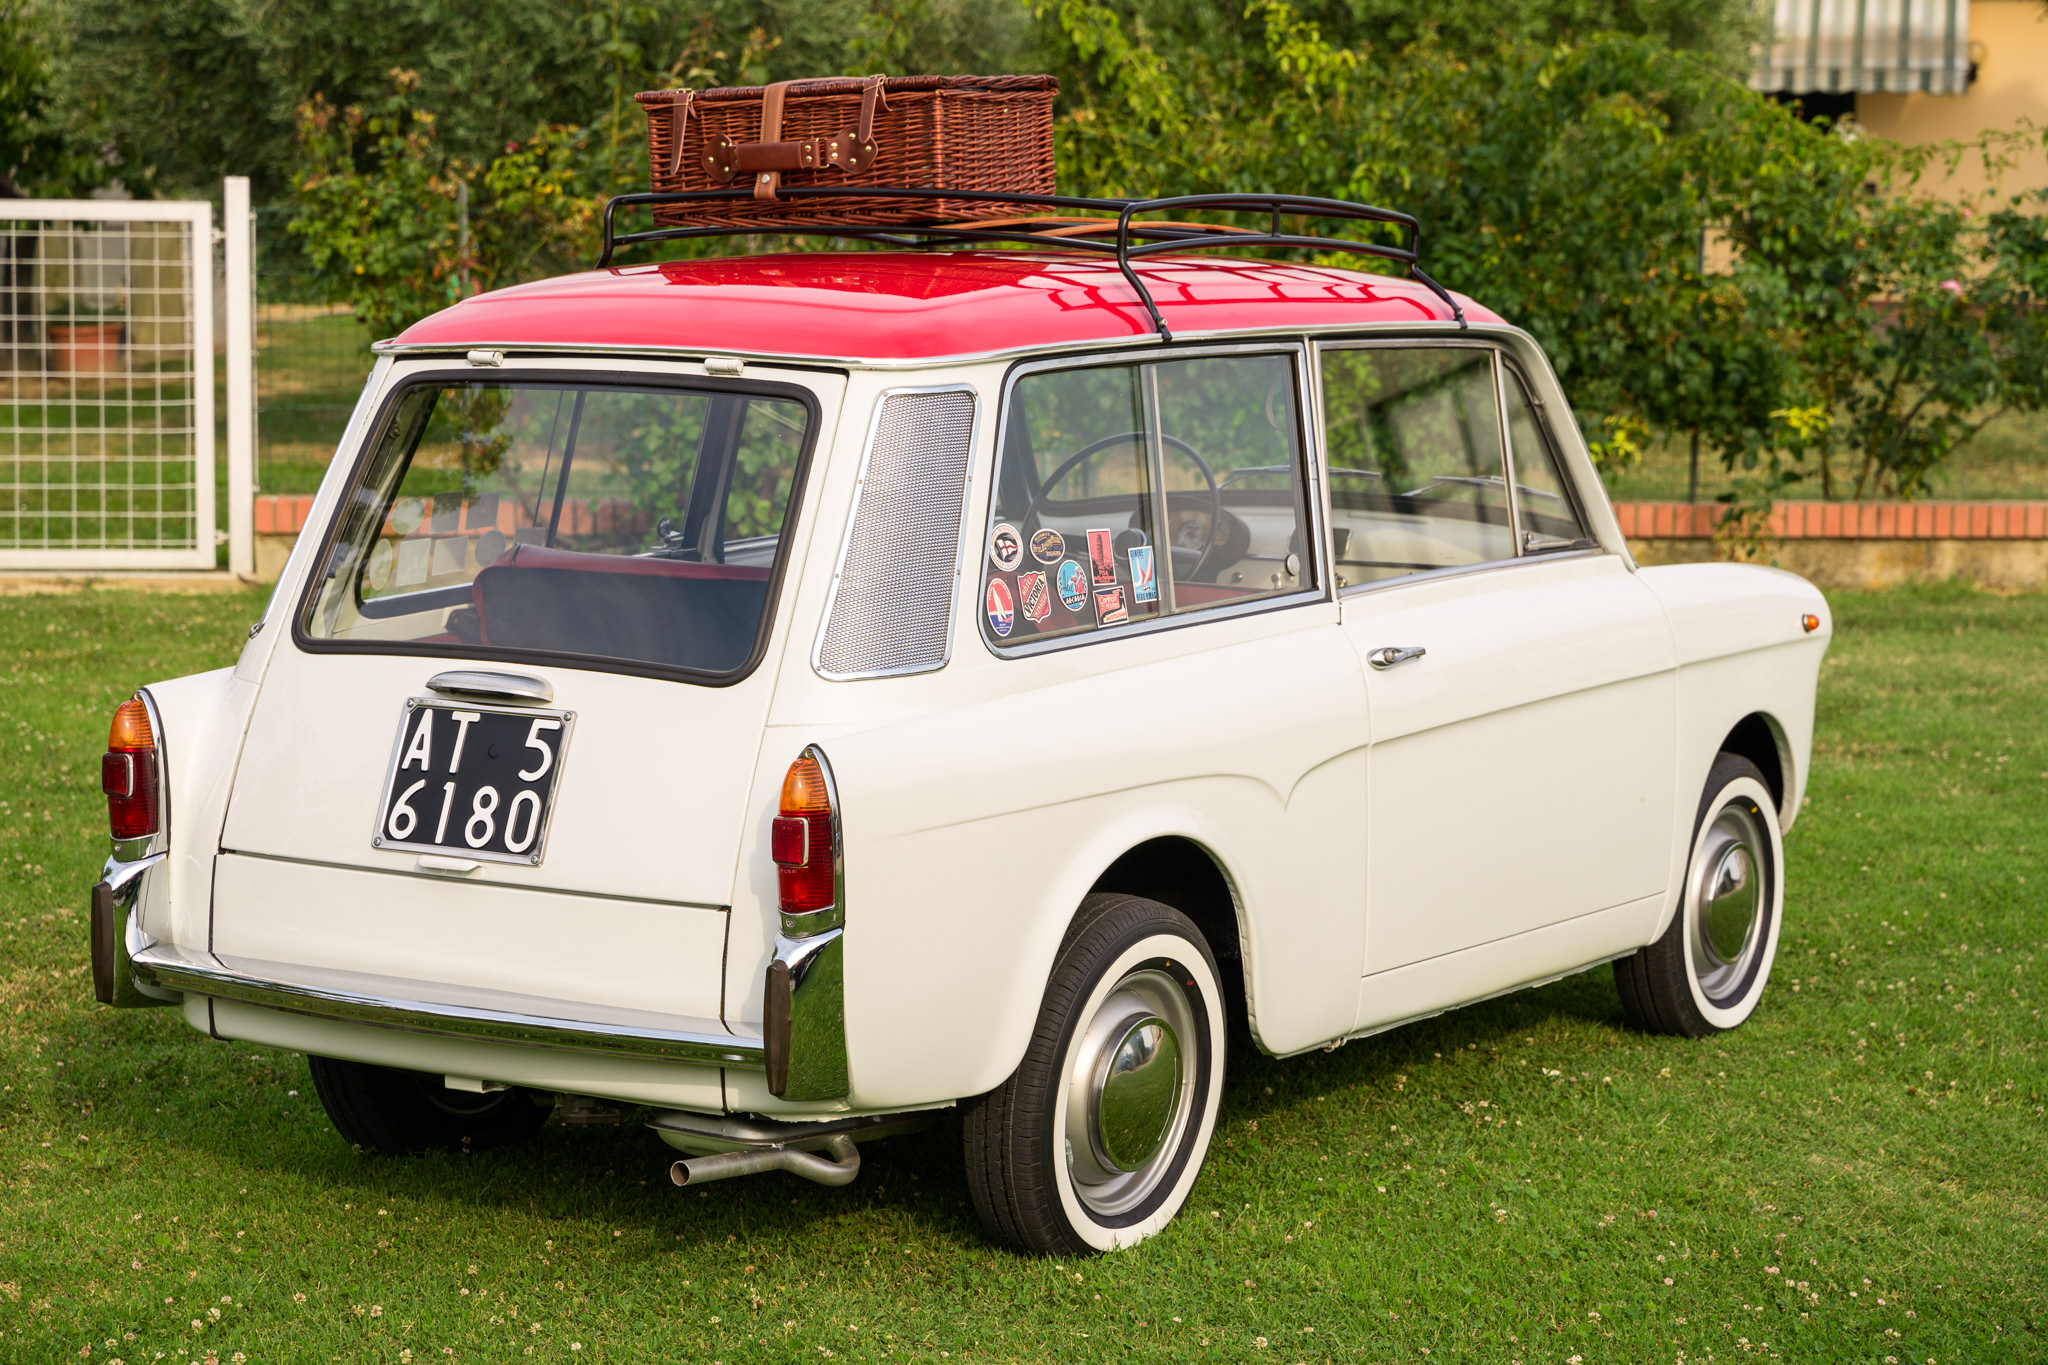 1966 Autobianchi Bianchina Panoramica Rear Three-Quarter